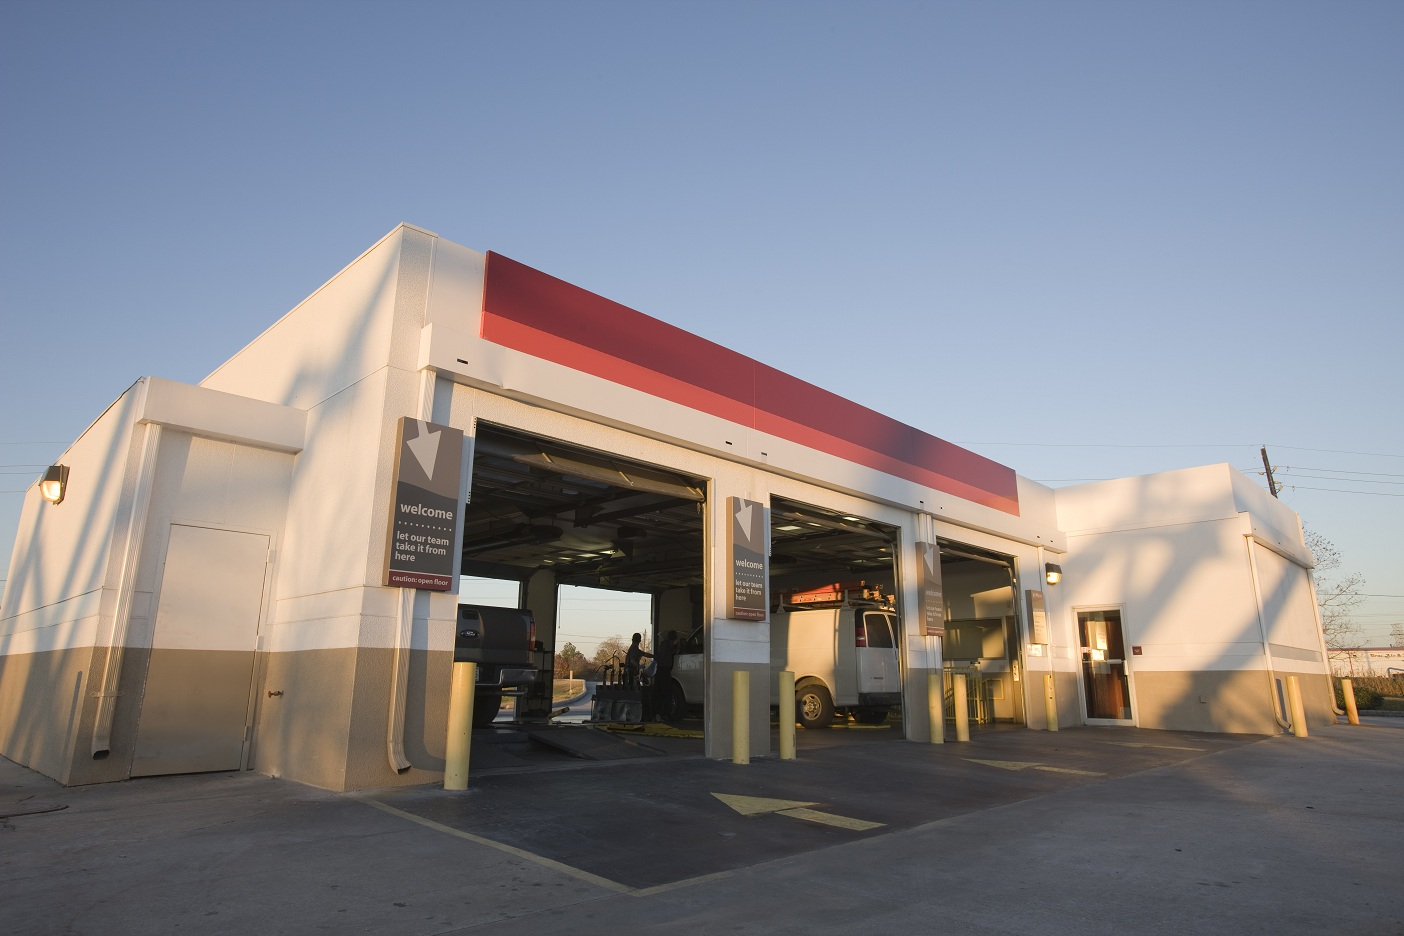 Jiffy Lube in Apple Valley, CA